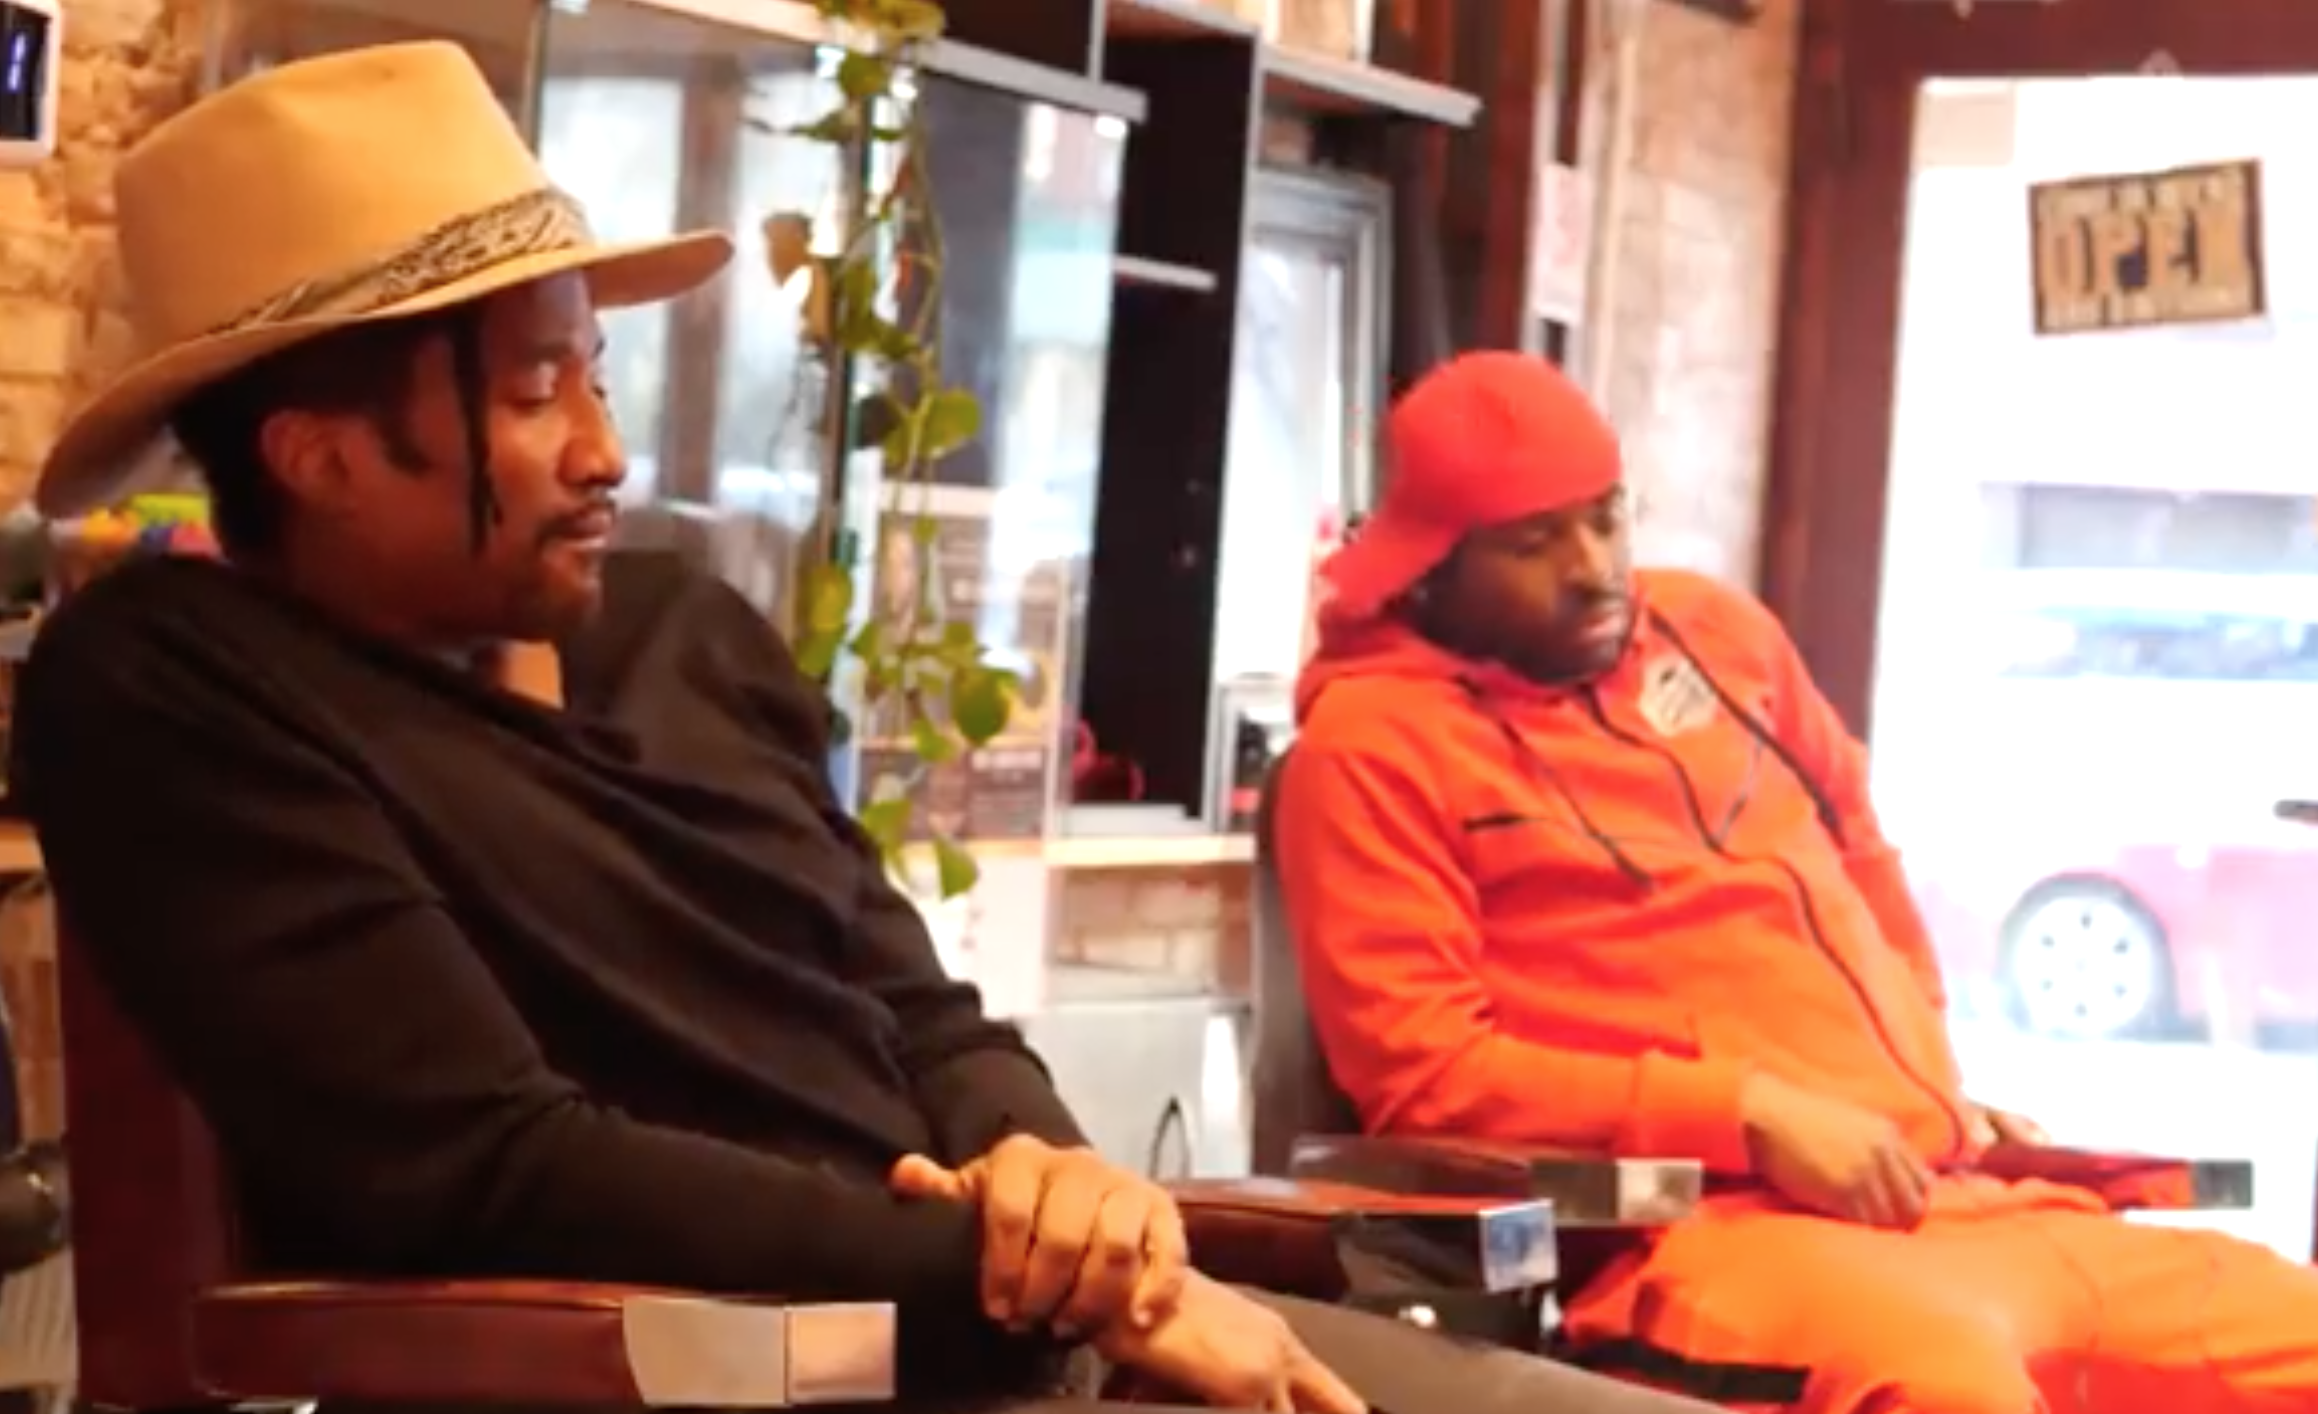 Q-Tip Says He Discovered Megan Thee Stallion Back In 2018 & Labels Snubbed Her